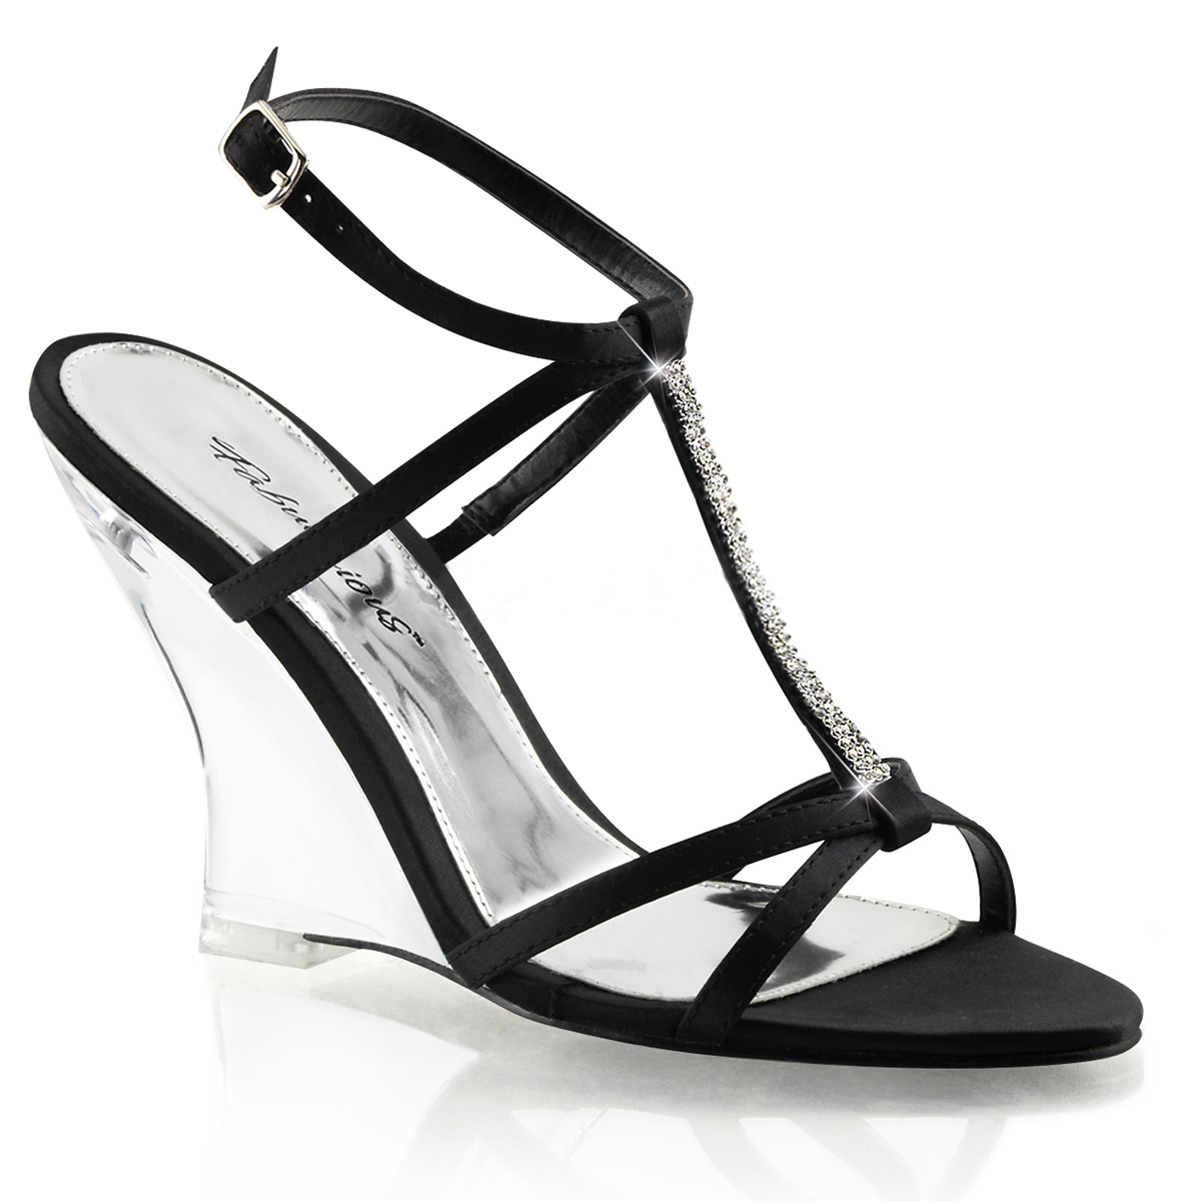 Womens Strappy Black Wedge Sandals Shoes with Rhinestones and 4'' Clear Heels